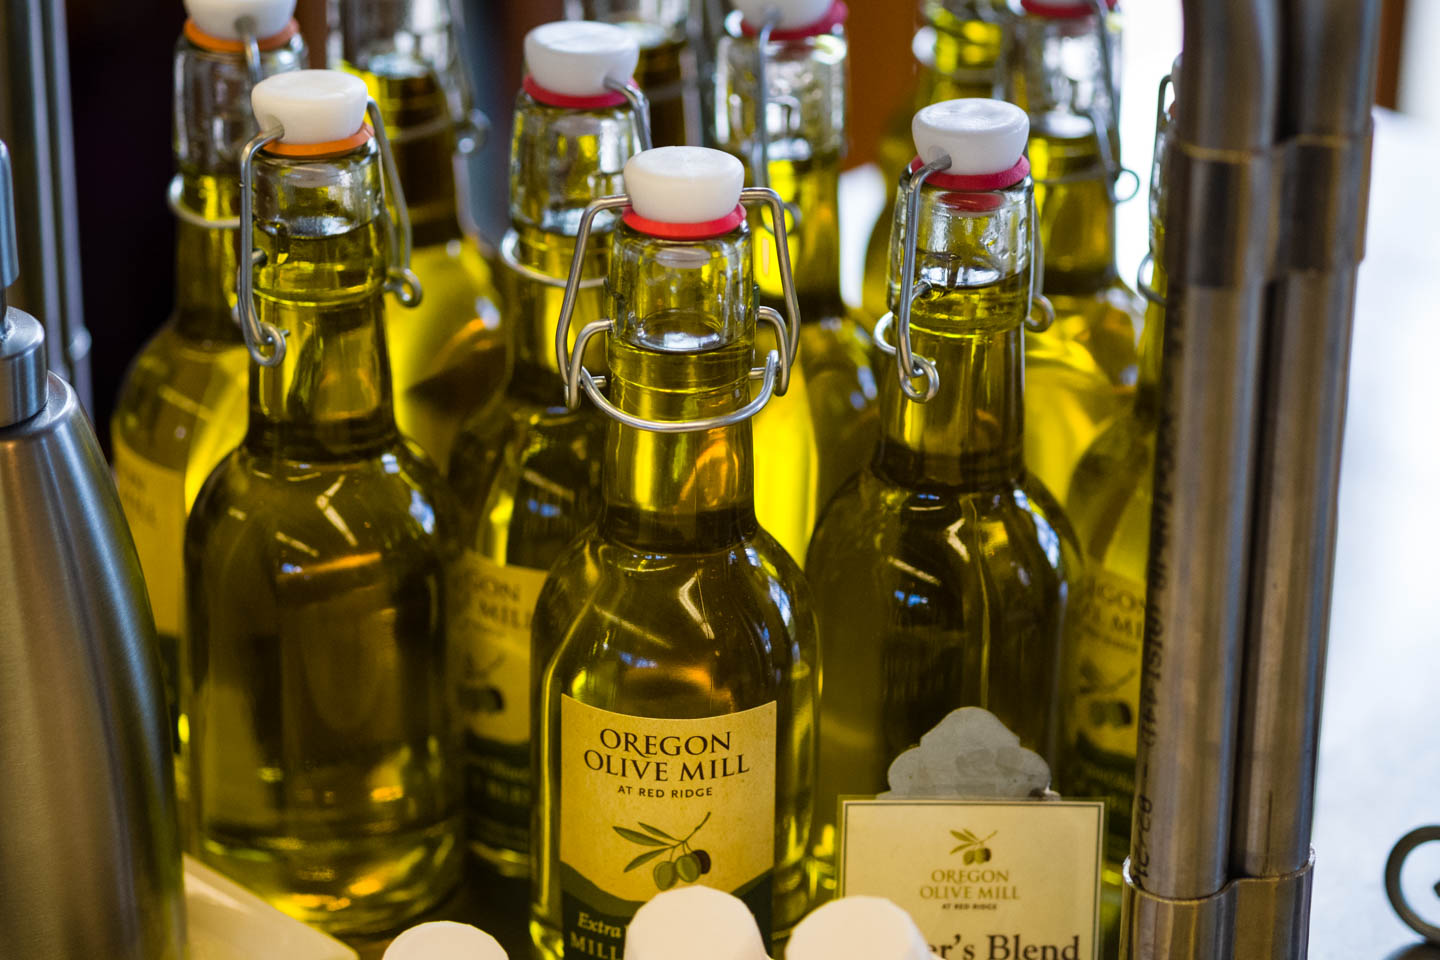 Olive Oil from Oregon Olive Mill